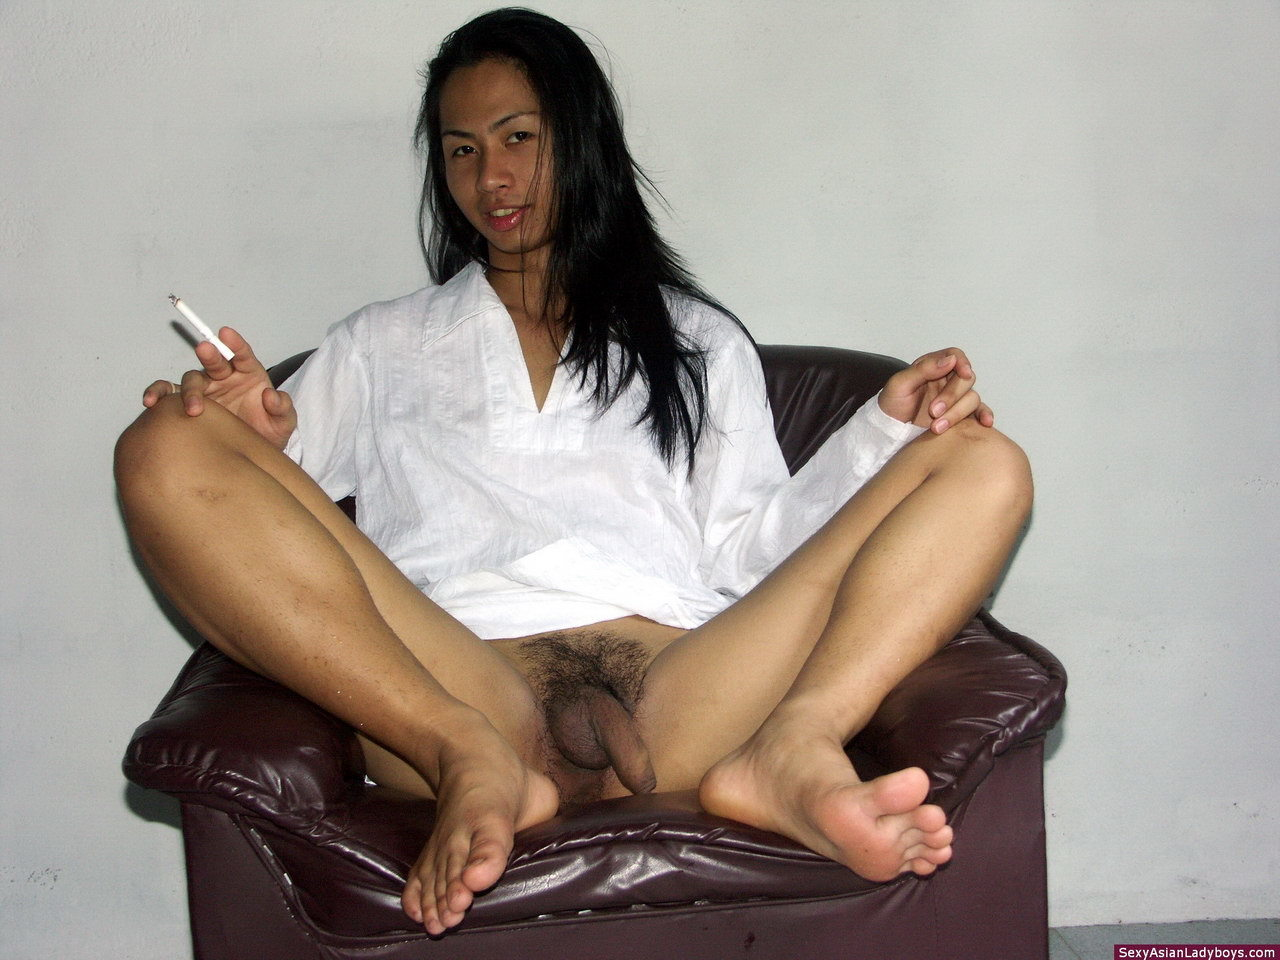 Nice Femboy Stripping And Proudly Exhibiting Her Raw Penis